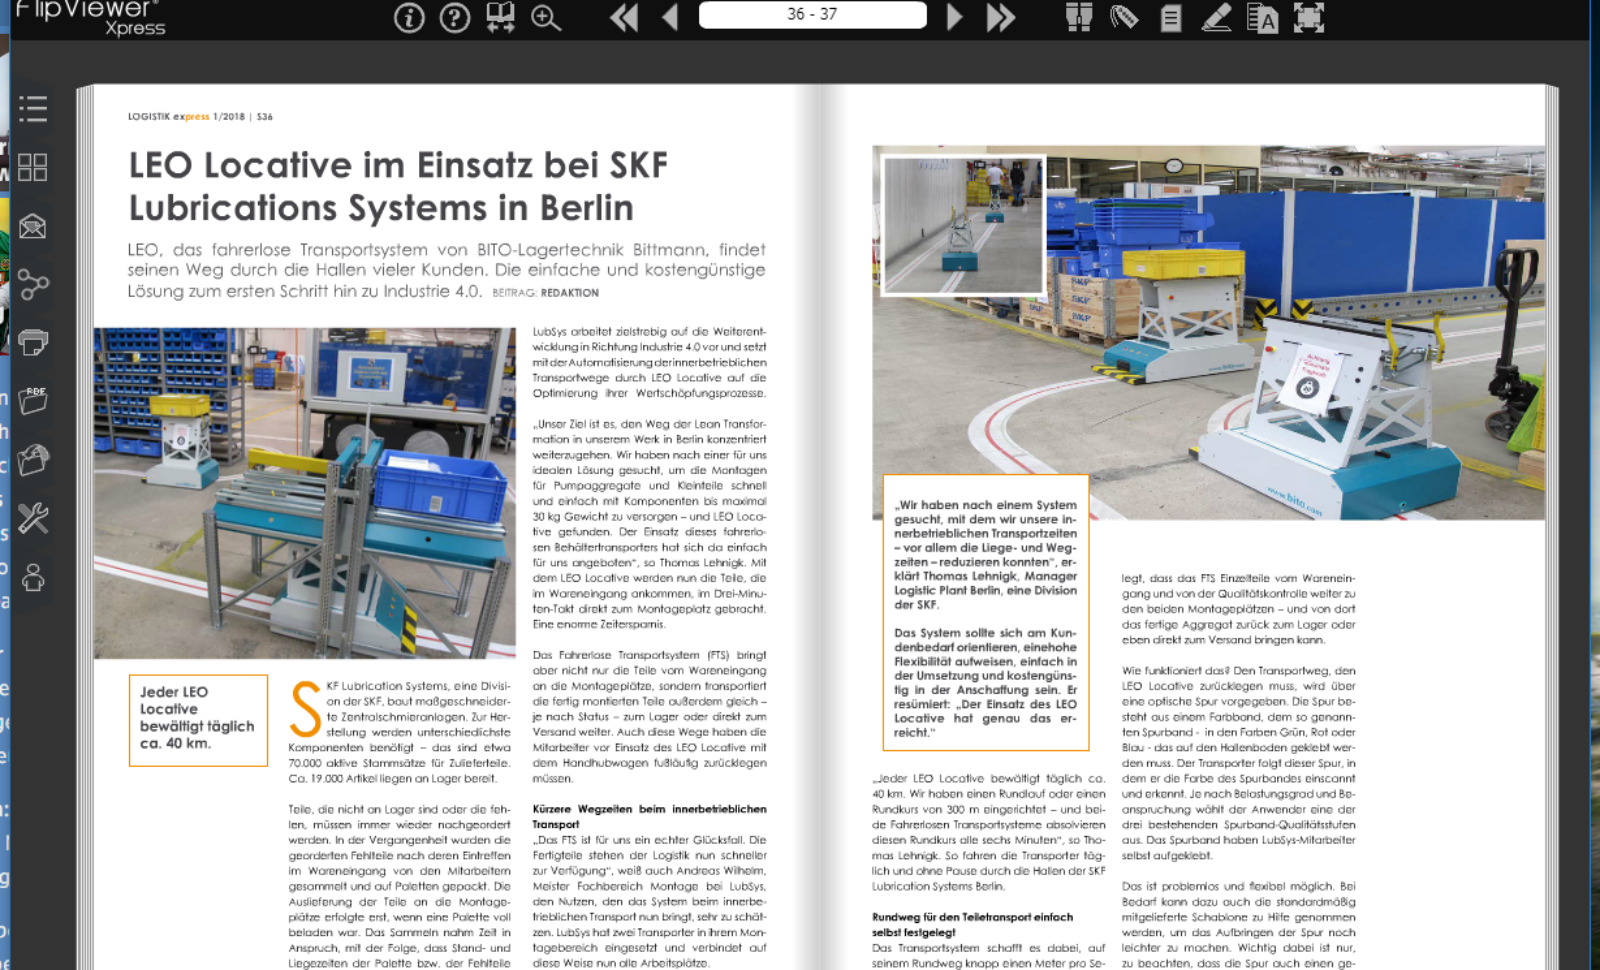 LEO Locative im Einsatz bei SKF Lubrications Systems in Berlin